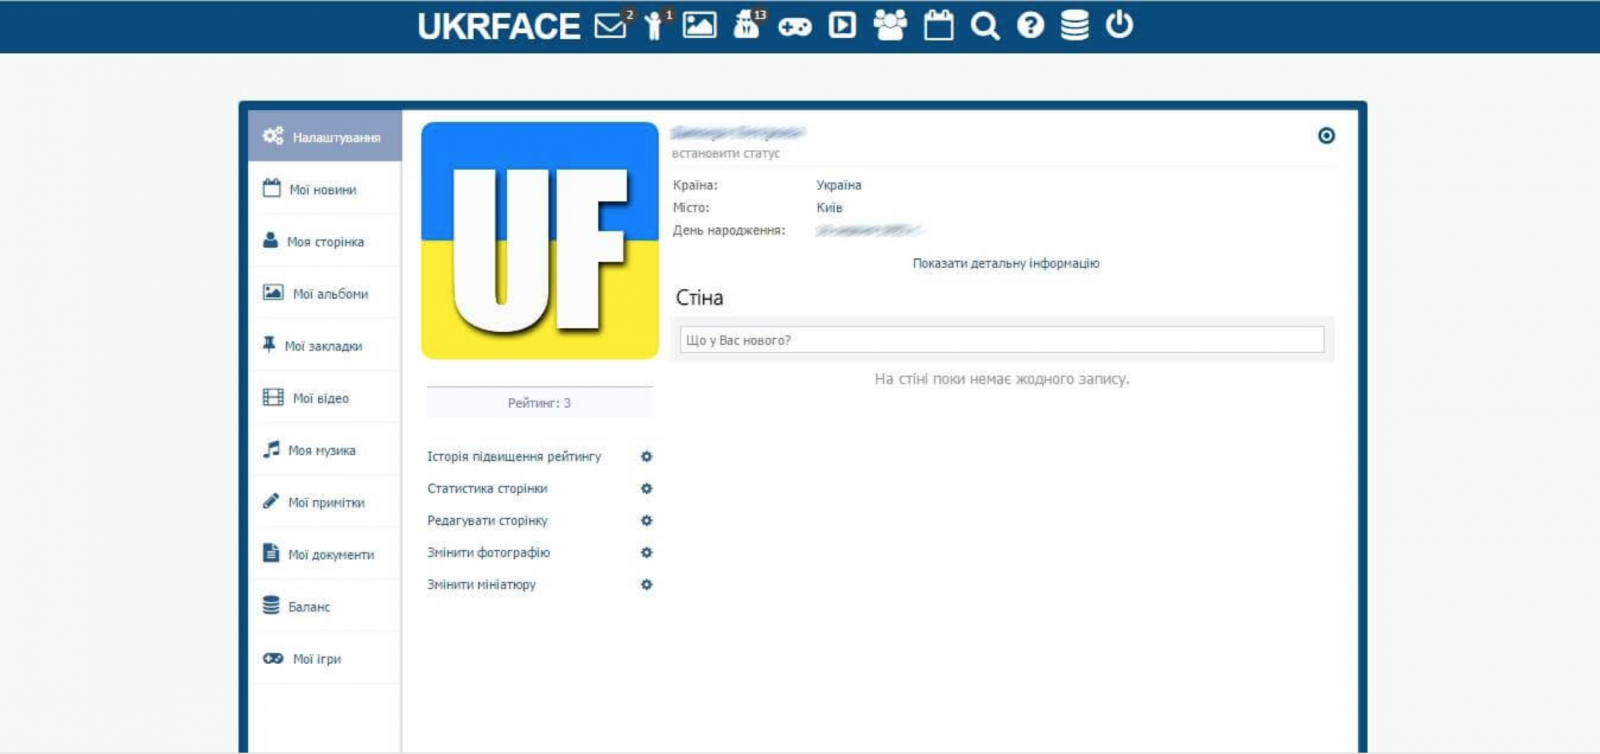 Social networks of Ukraine: a selection of sites